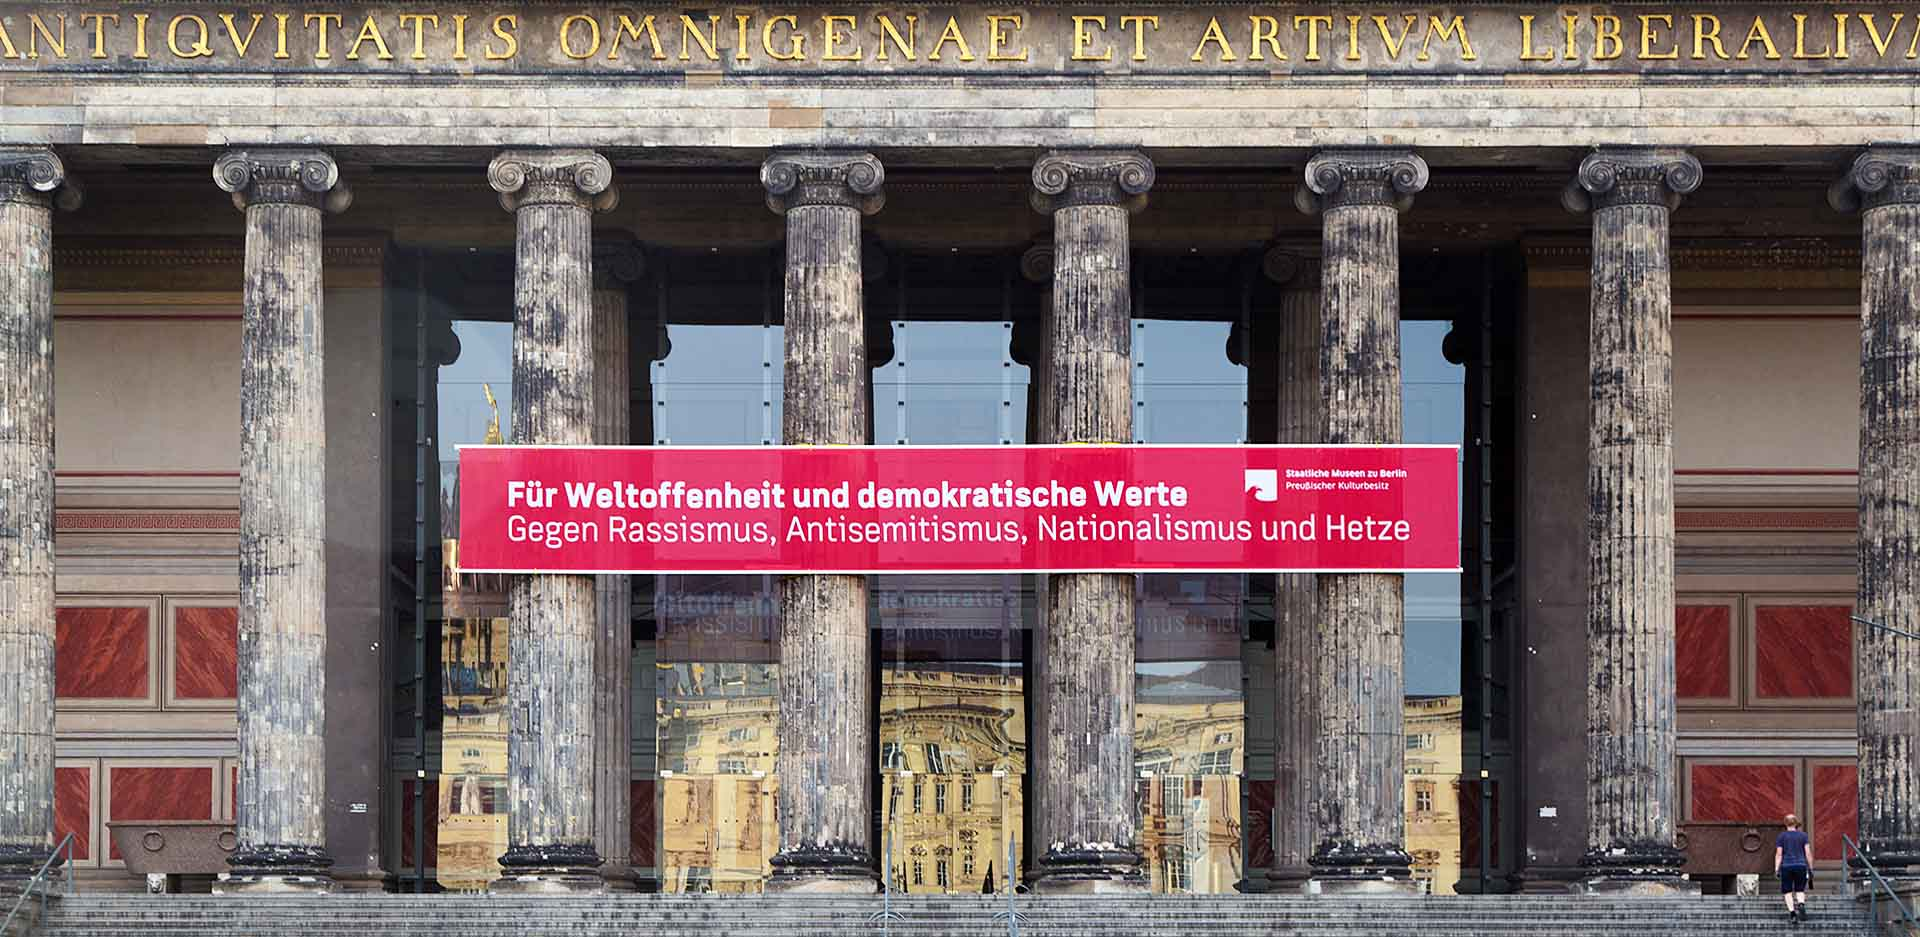 Banner at the Altes Museum